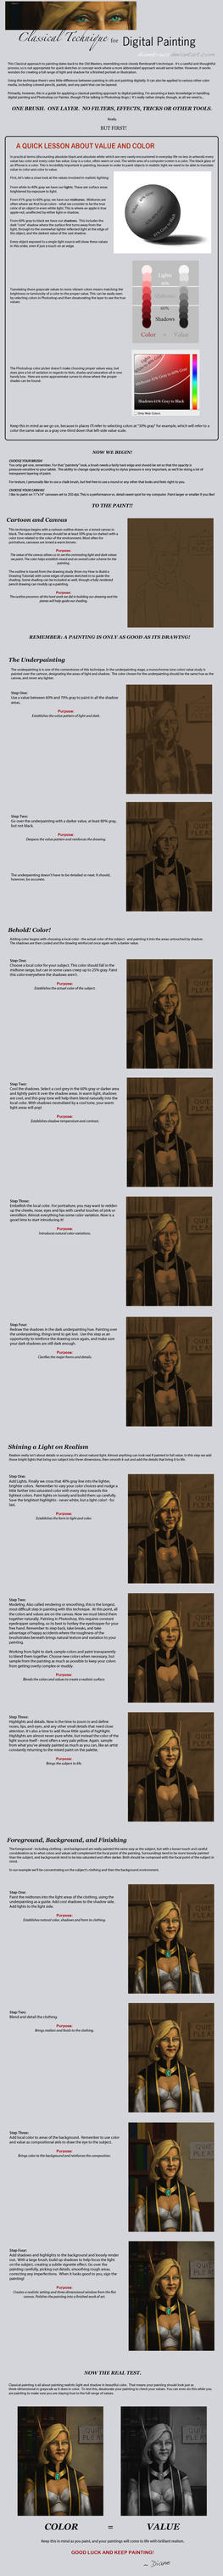 Tutorial: Classical Technique for Digital Painting by banjodi